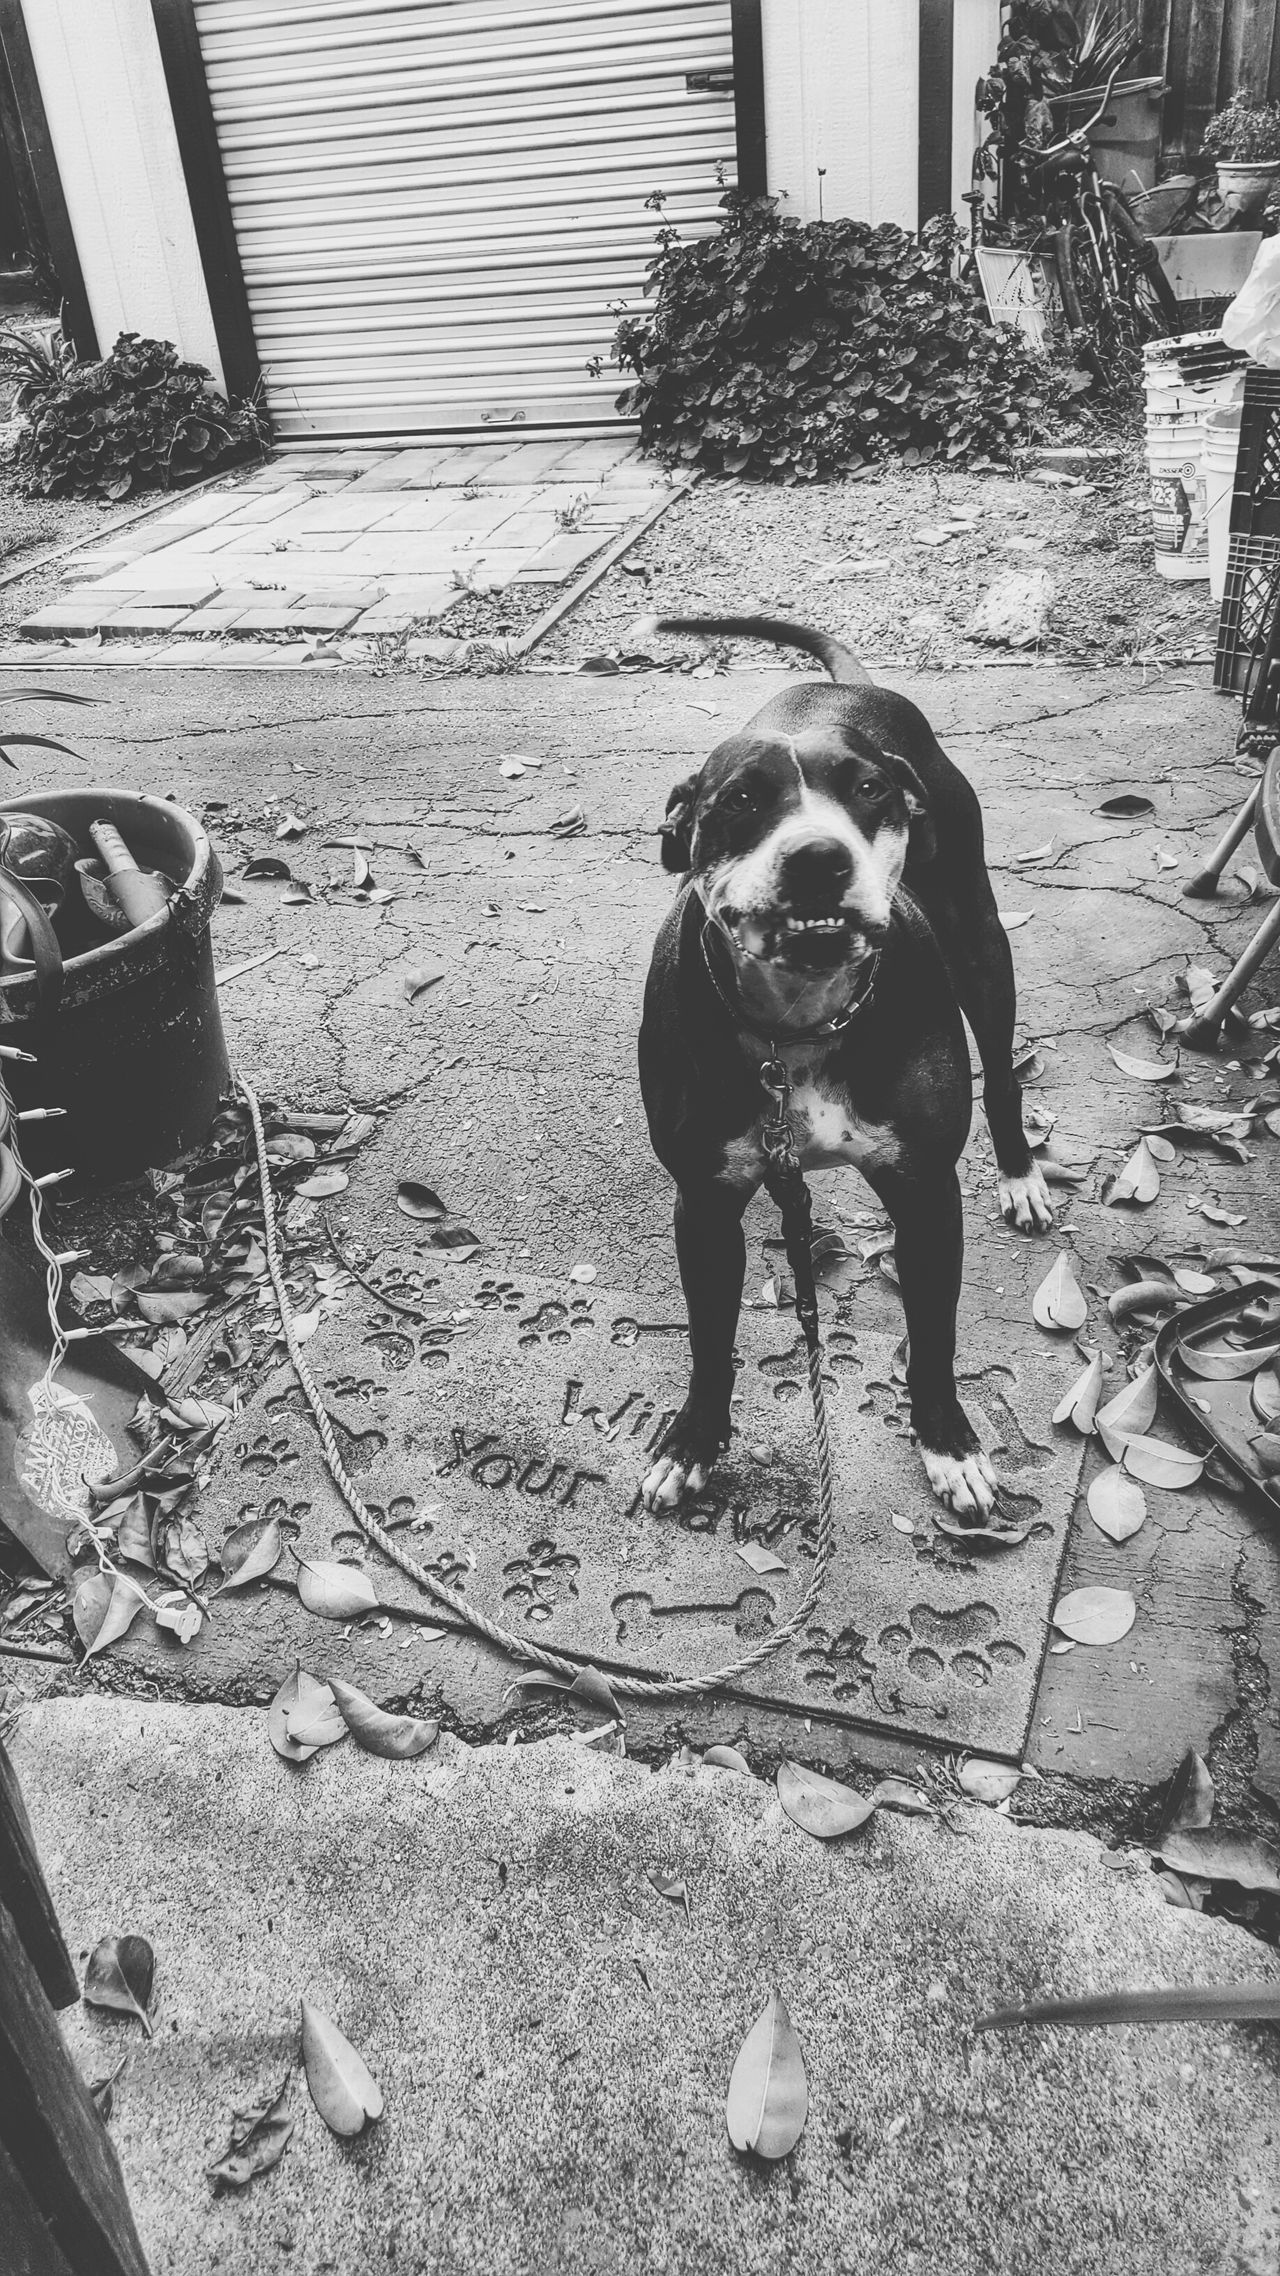 Pitbull Lover Pitbulllover Pitbull♥ Pitbull Love Pitbull Dog Love Dog Dogs Of EyeEm Animal Animal_collection Animal Photography Animal Themes High Contrast Bnw Junkyarddog